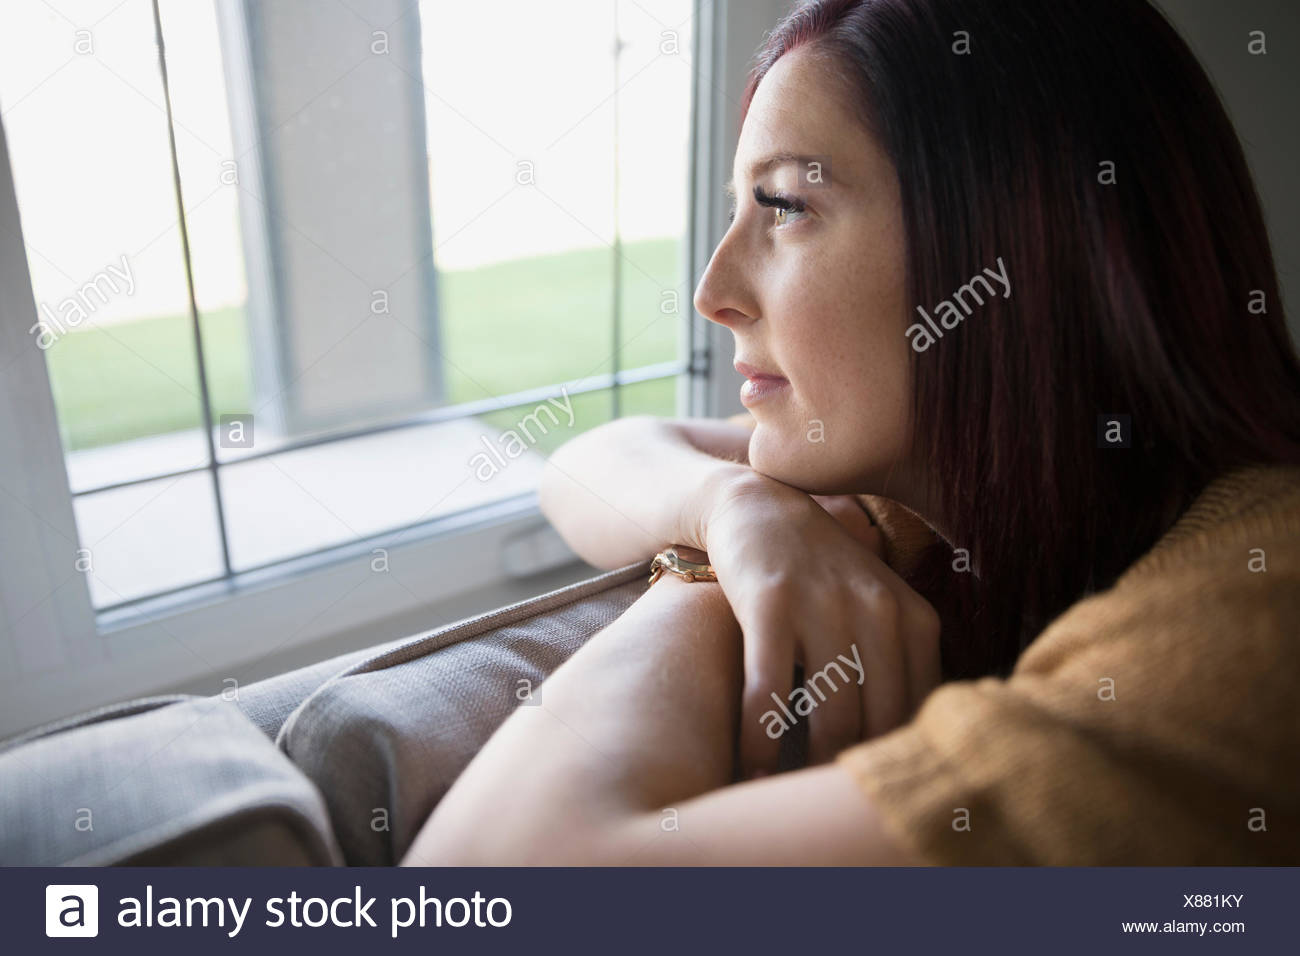 Pensive woman on sofa looking out window Photo Stock